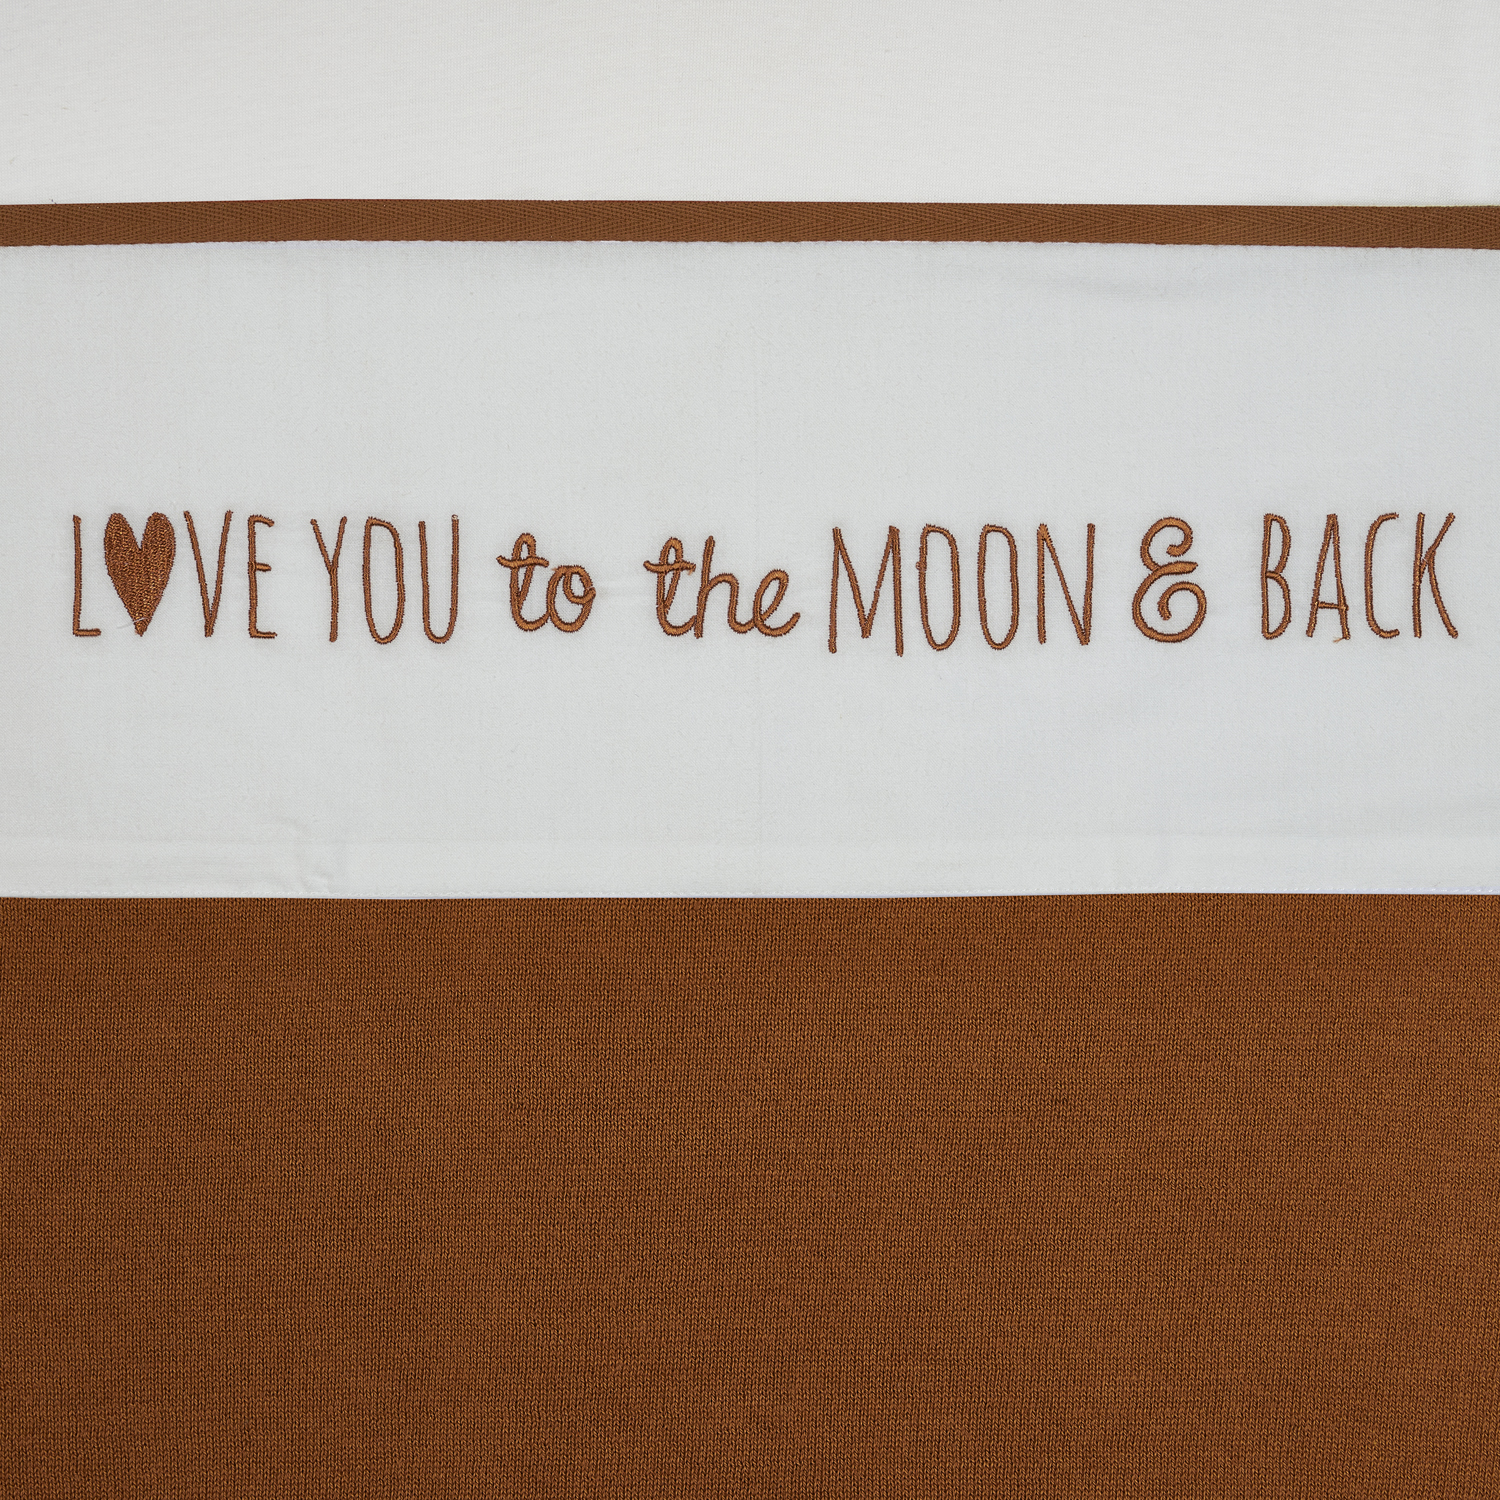 Wieglaken Love You To The Moon & Back - Camel - 75x100cm